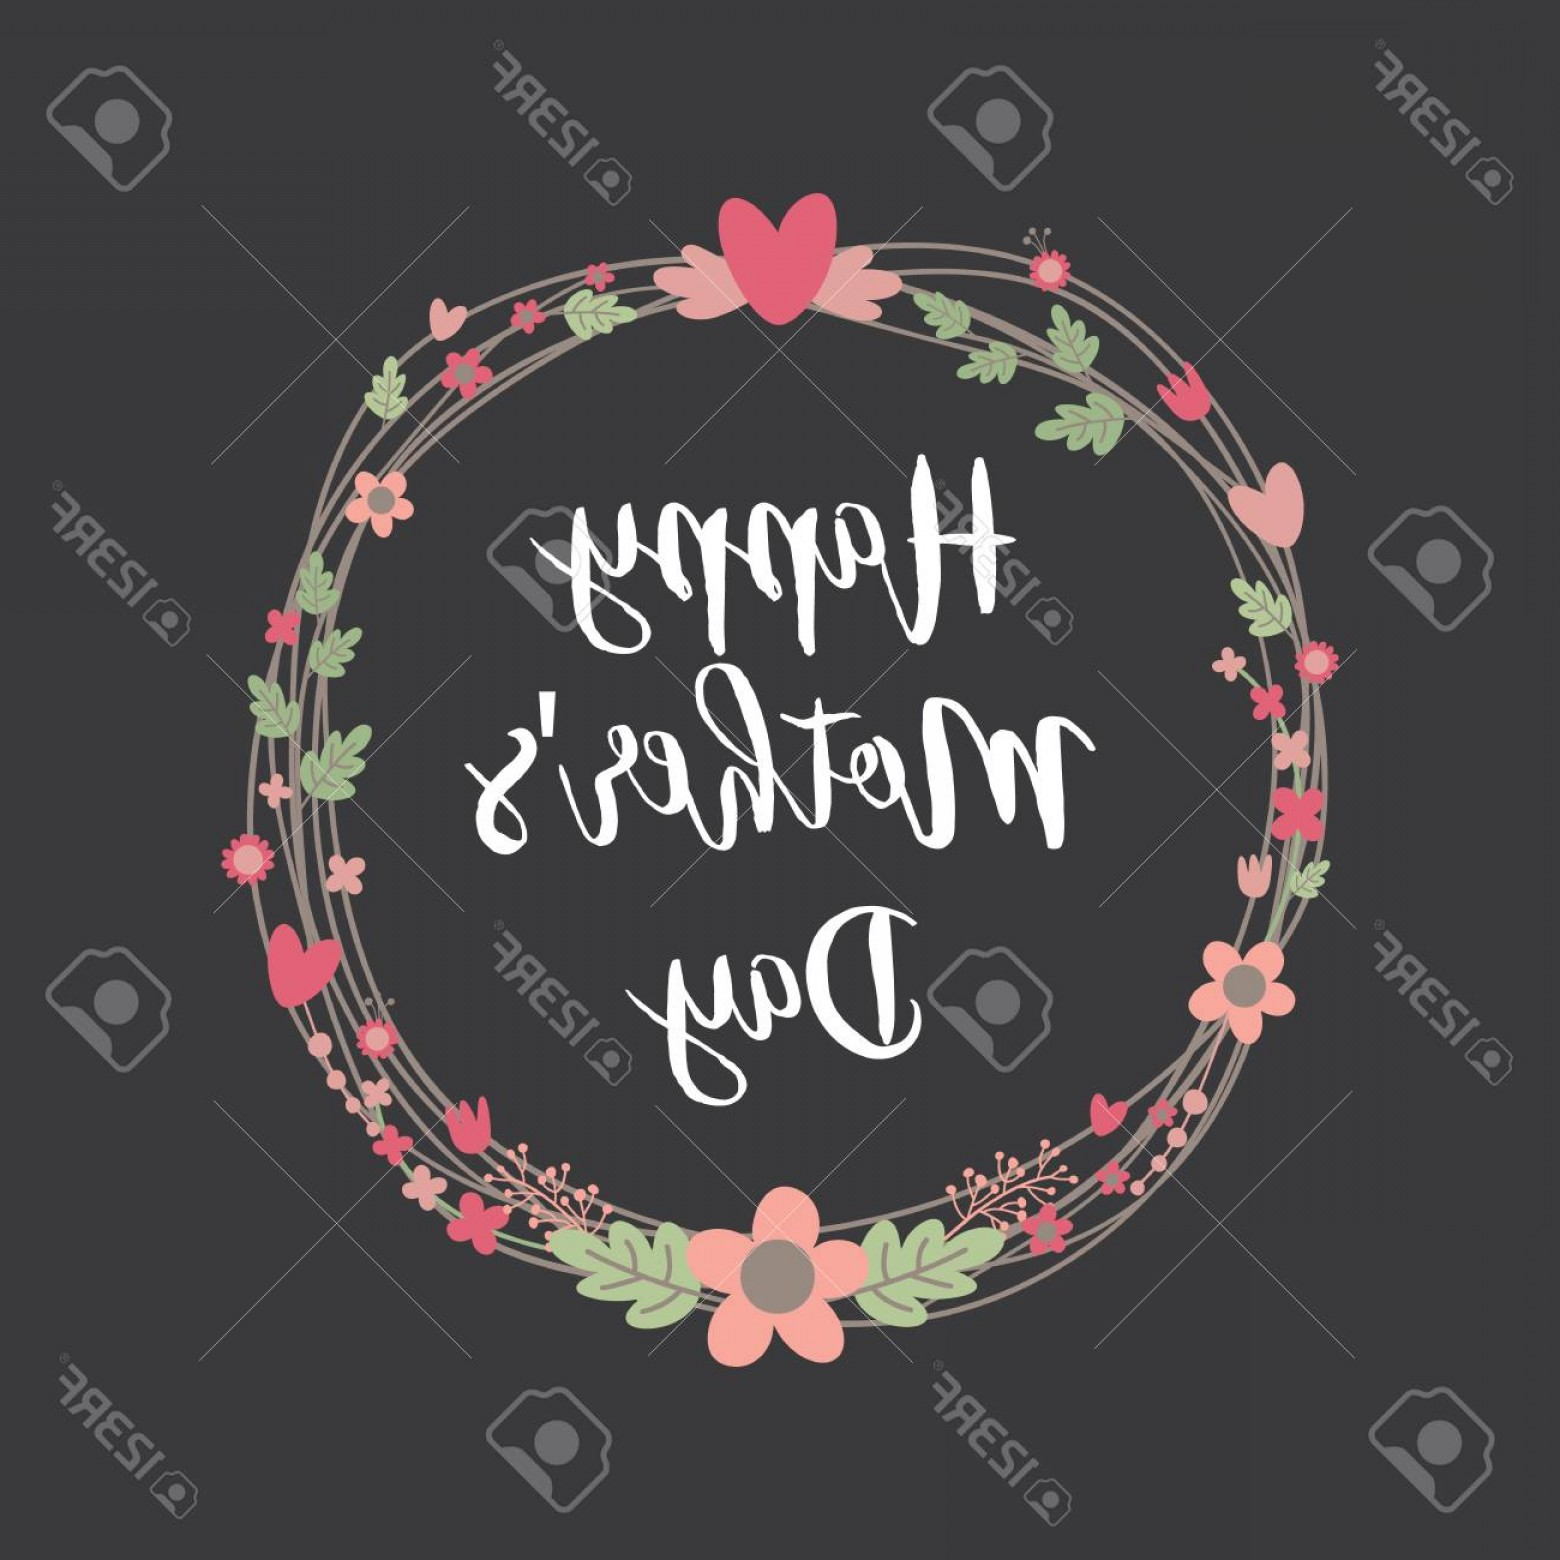 Floral Laurel Wreath Vector: Photostock Vector Happy Mothers Day With Flowers Greeting Card Laurel Wreath Floral Wreath Vector Illustration Floral